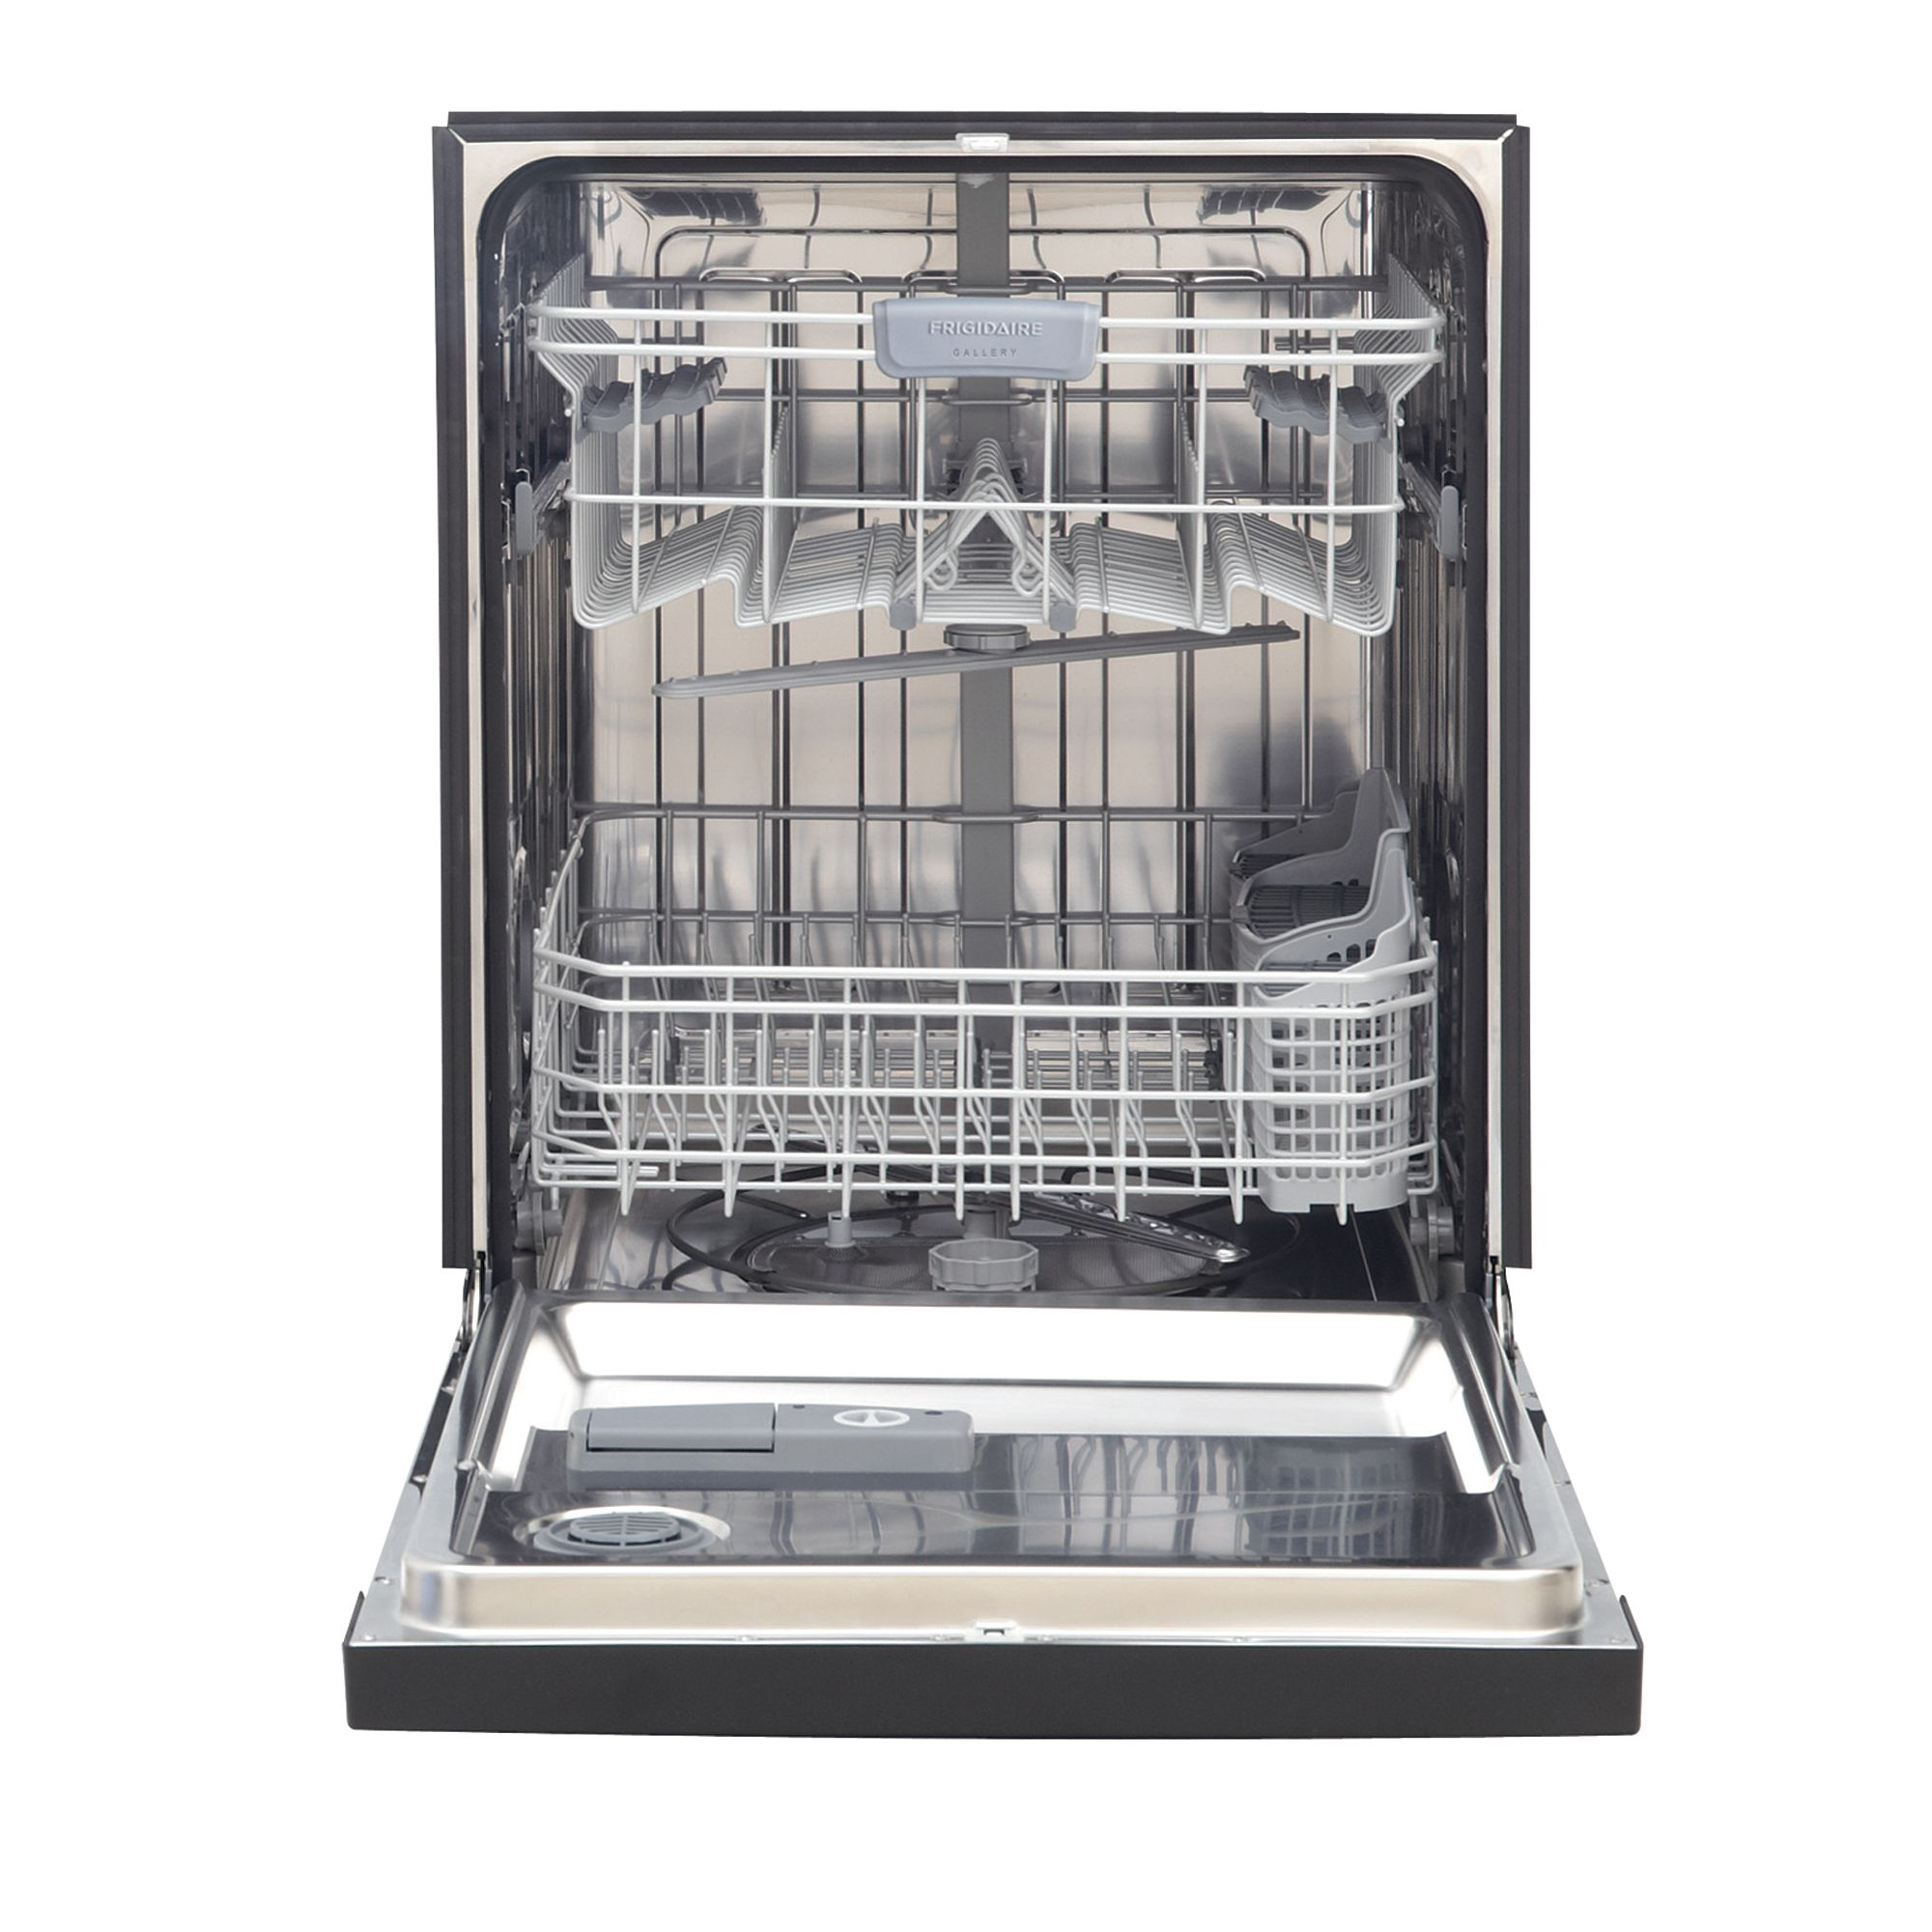 "Frigidaire Gallery 24"" Built-In Dishwasher w/ Stainless Steel Interior"